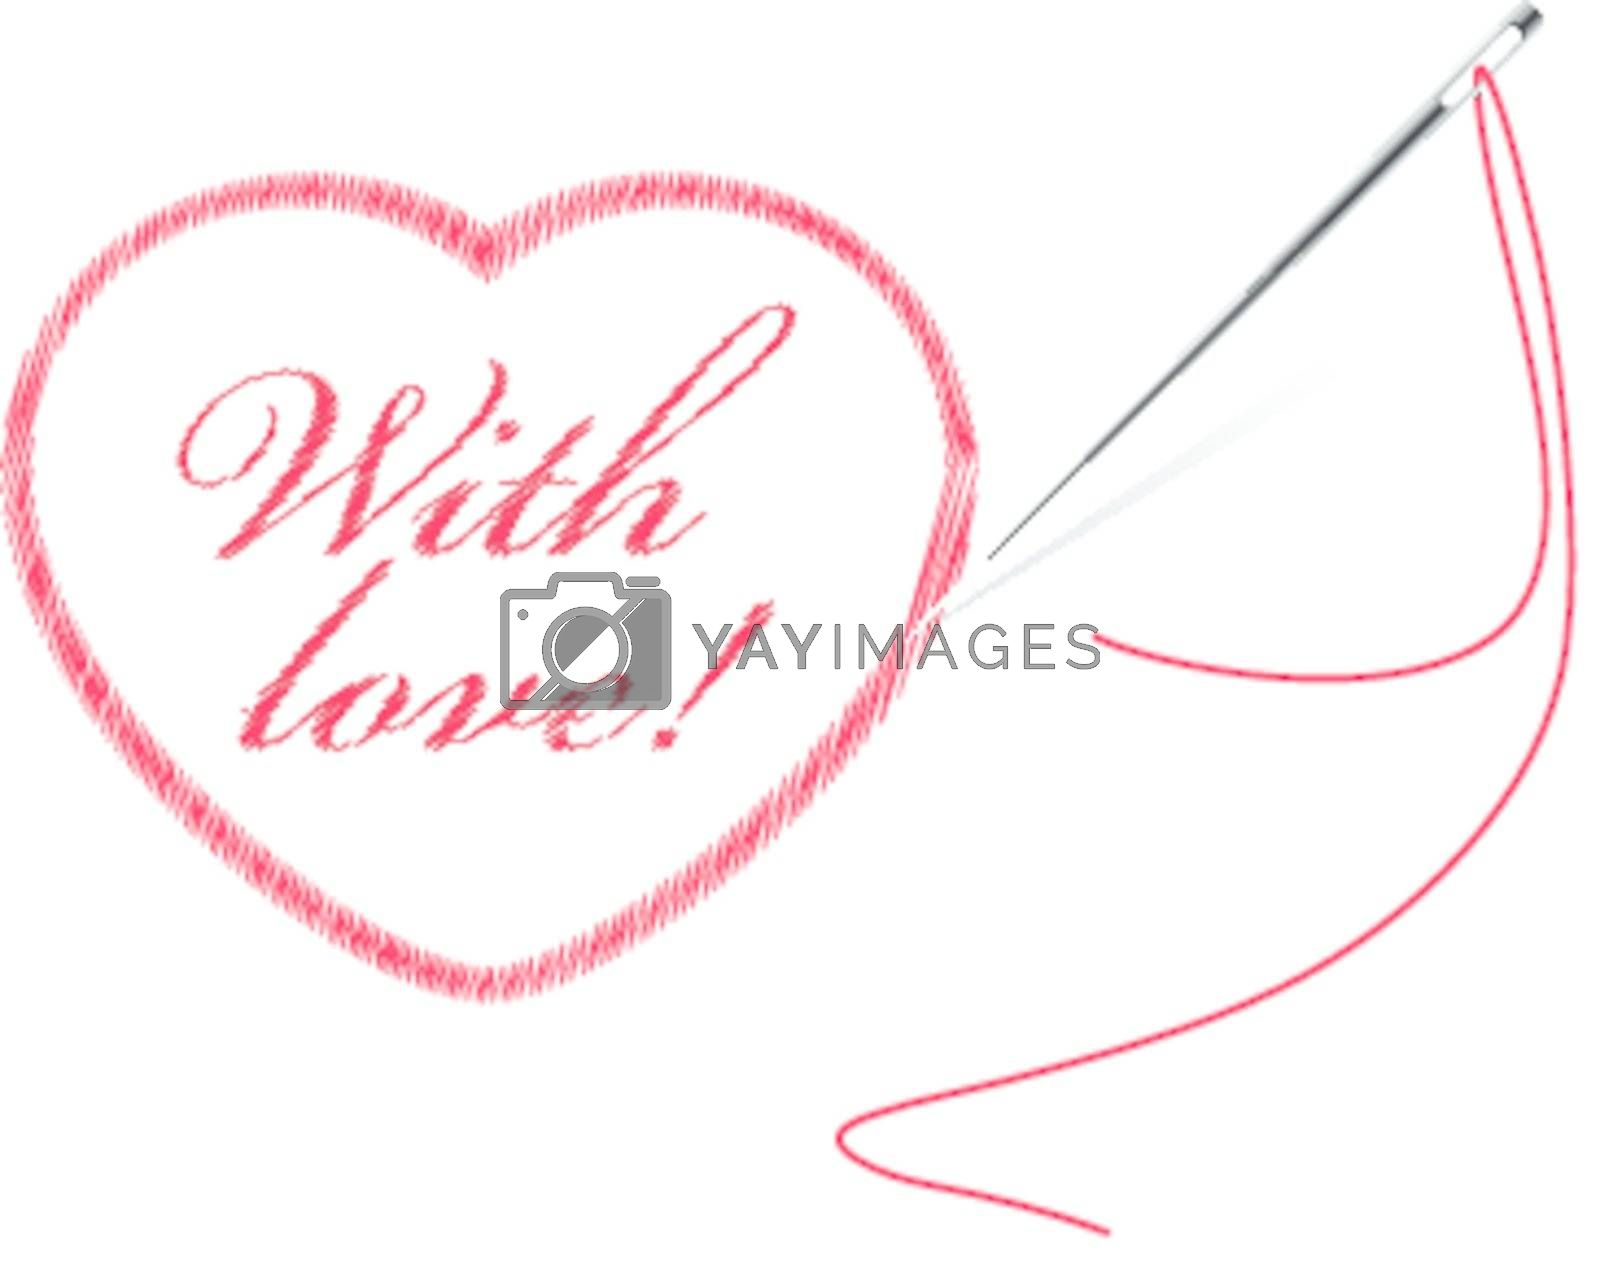 embroidery with heart and frame vector illustration isolated on white background